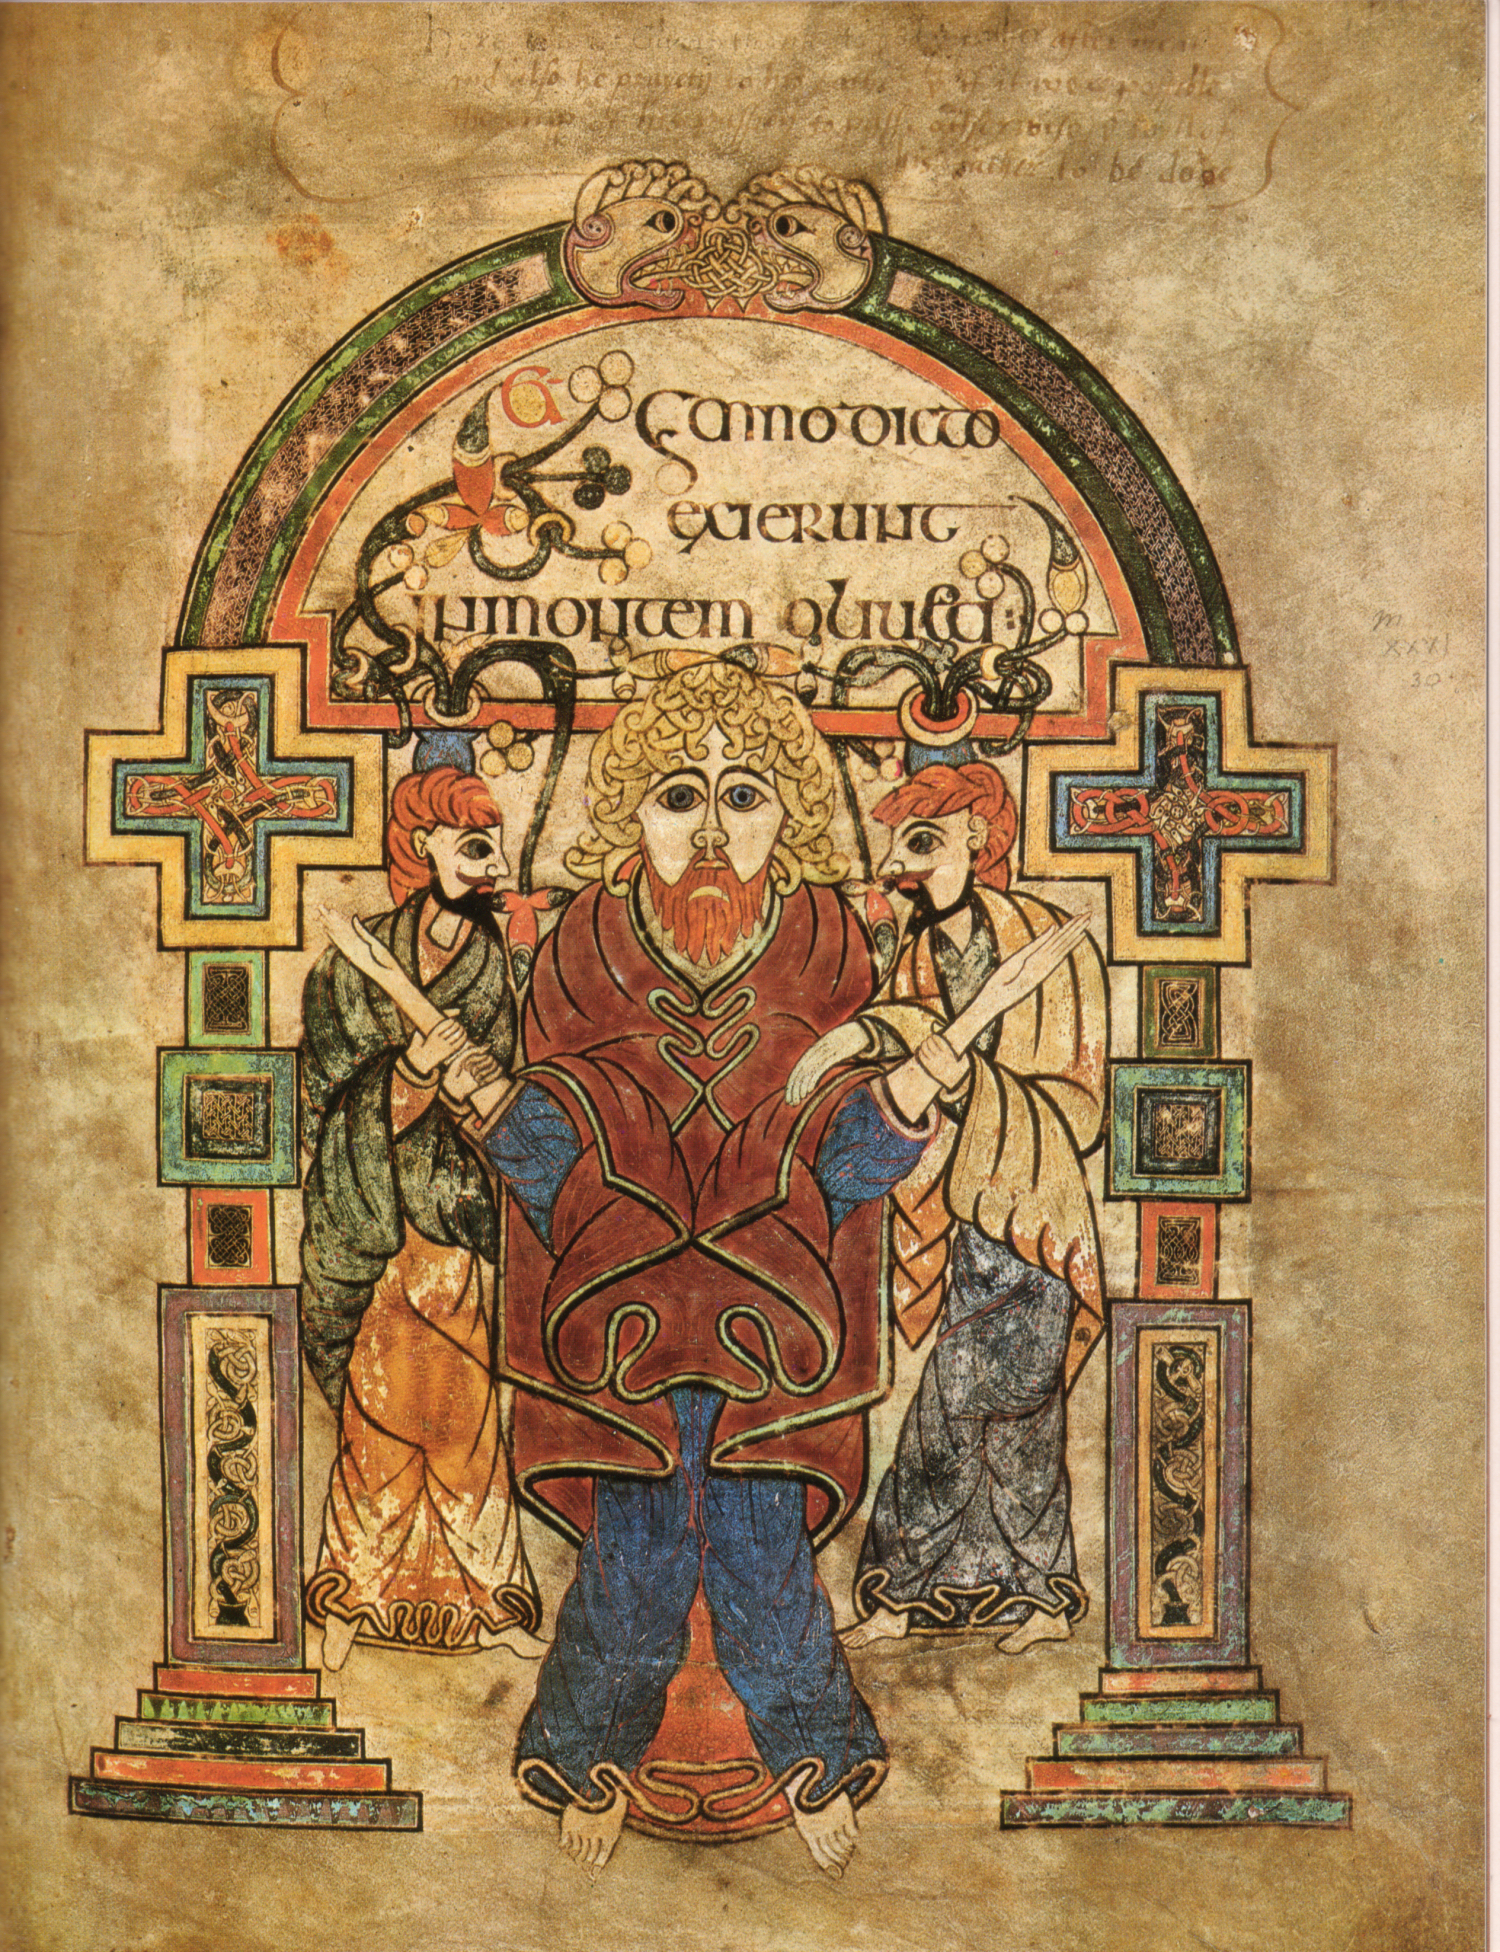 21 Breathtaking Images From The Mysterious Book Of Kells Churchpop